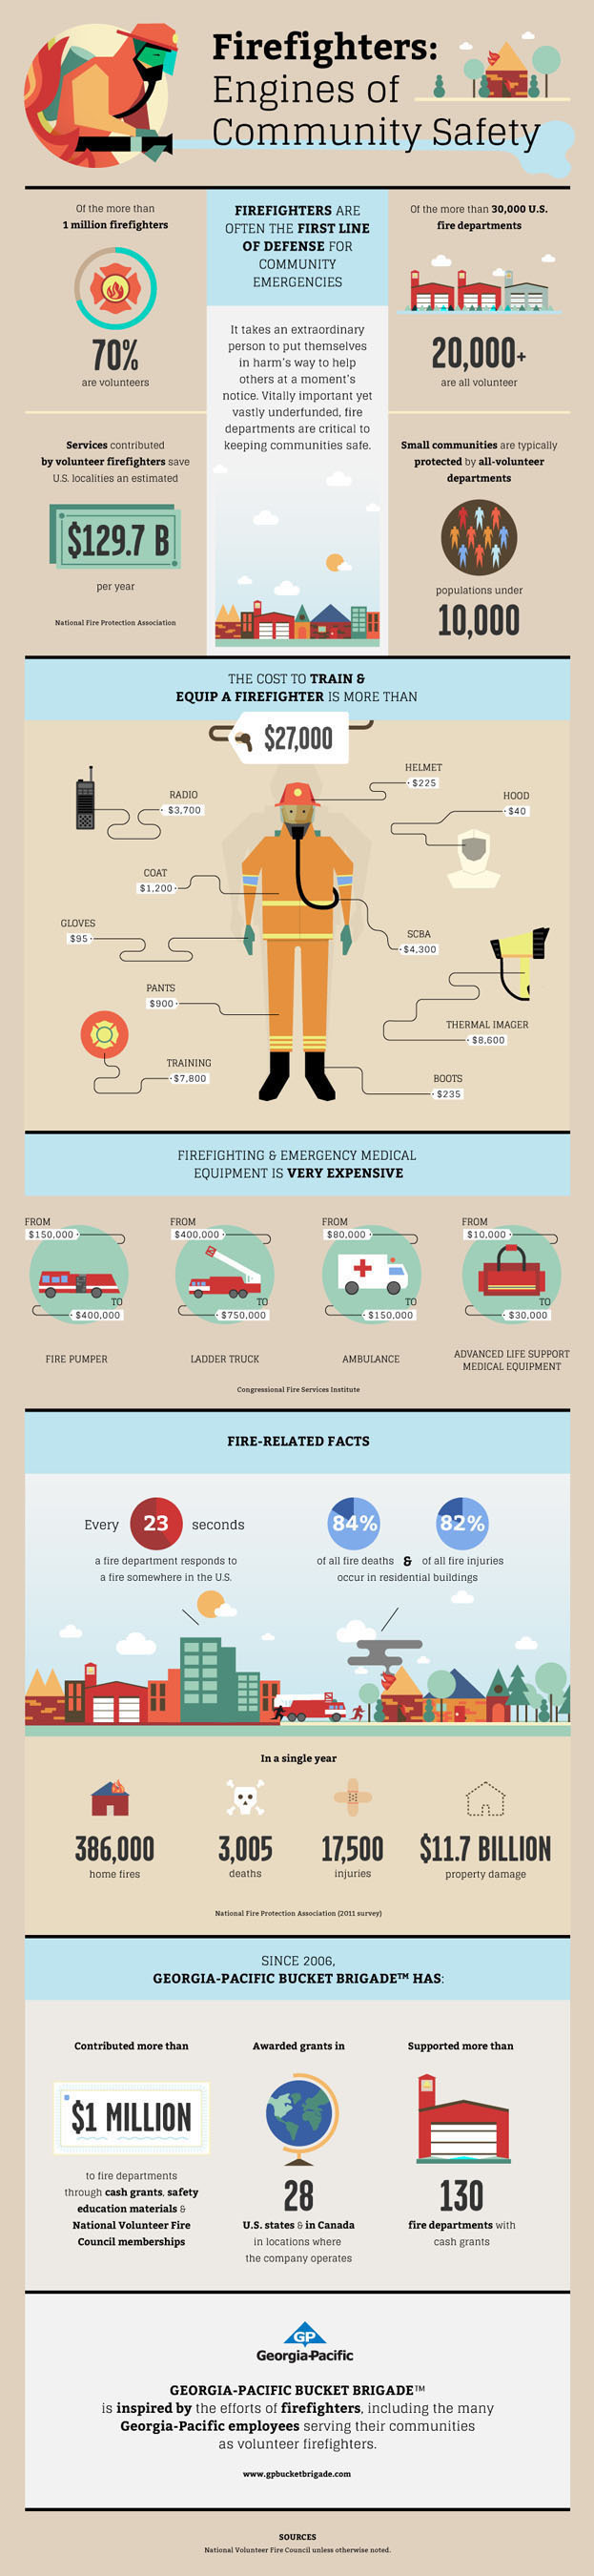 INFOGRAPHIC: Firefighters - the engines of community safety.  (PRNewsFoto/Georgia-Pacific)